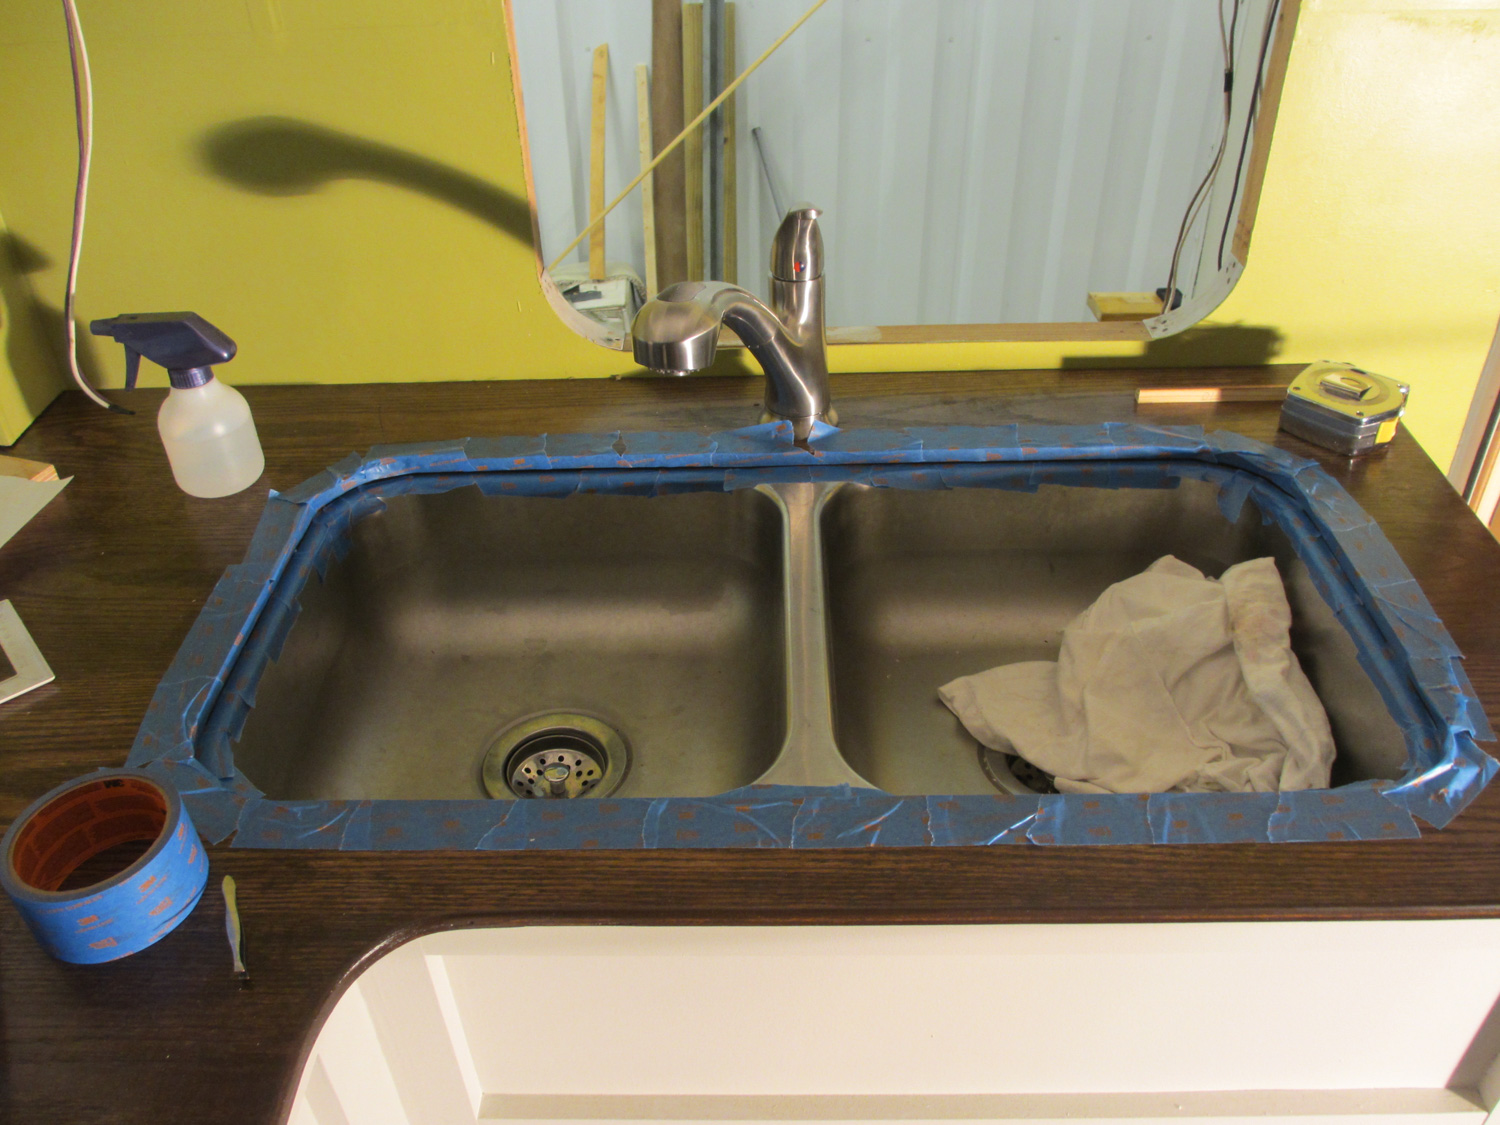 The countertop and kitchen sink were taped off for caulking.